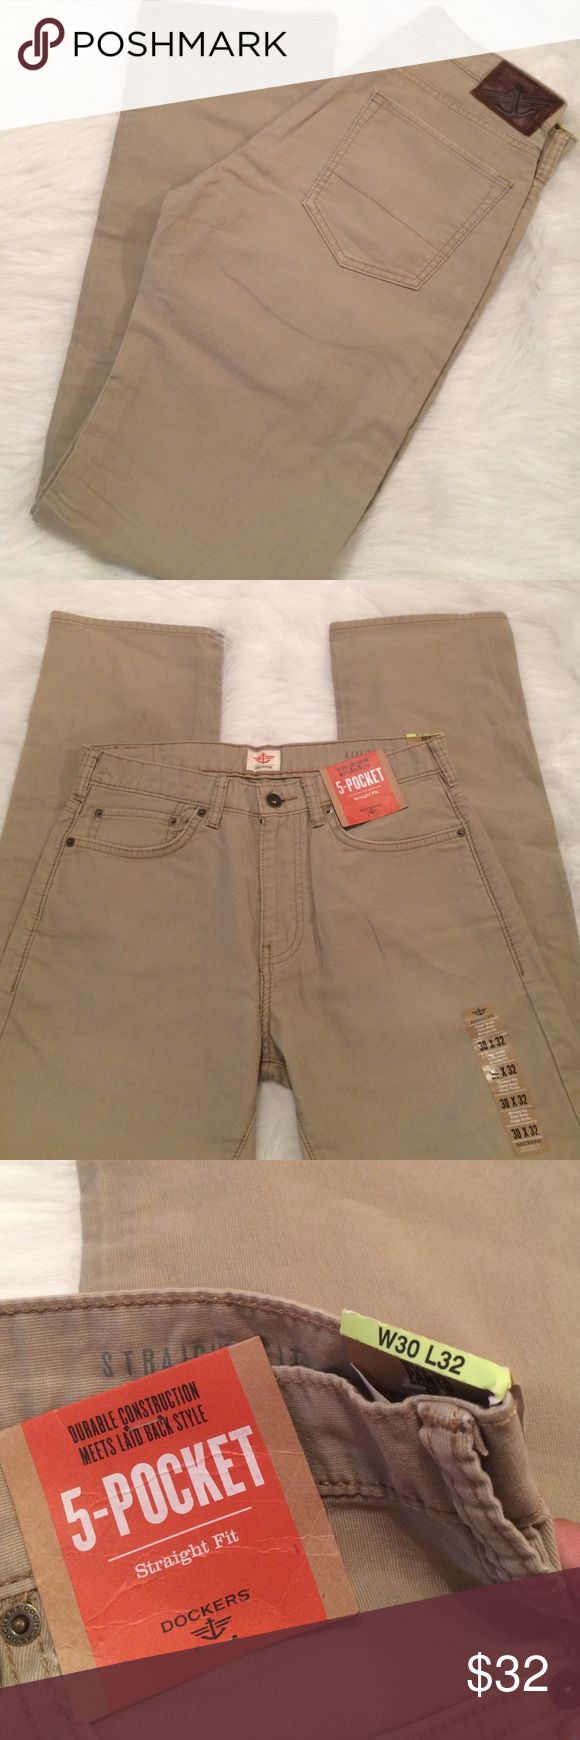 NWT Men's Docker Khaki Pants NWT pair of men's khaki Docker pants. They are size 30x32, 5 pocket, straight fit. They don't feel like jeans but they don't feel like the normal khaki pants either. I would say more of a casual khaki pant. Please ask any and all questions before purchasing. Happy Poshing💕💕💕 Dockers Pants Straight Leg